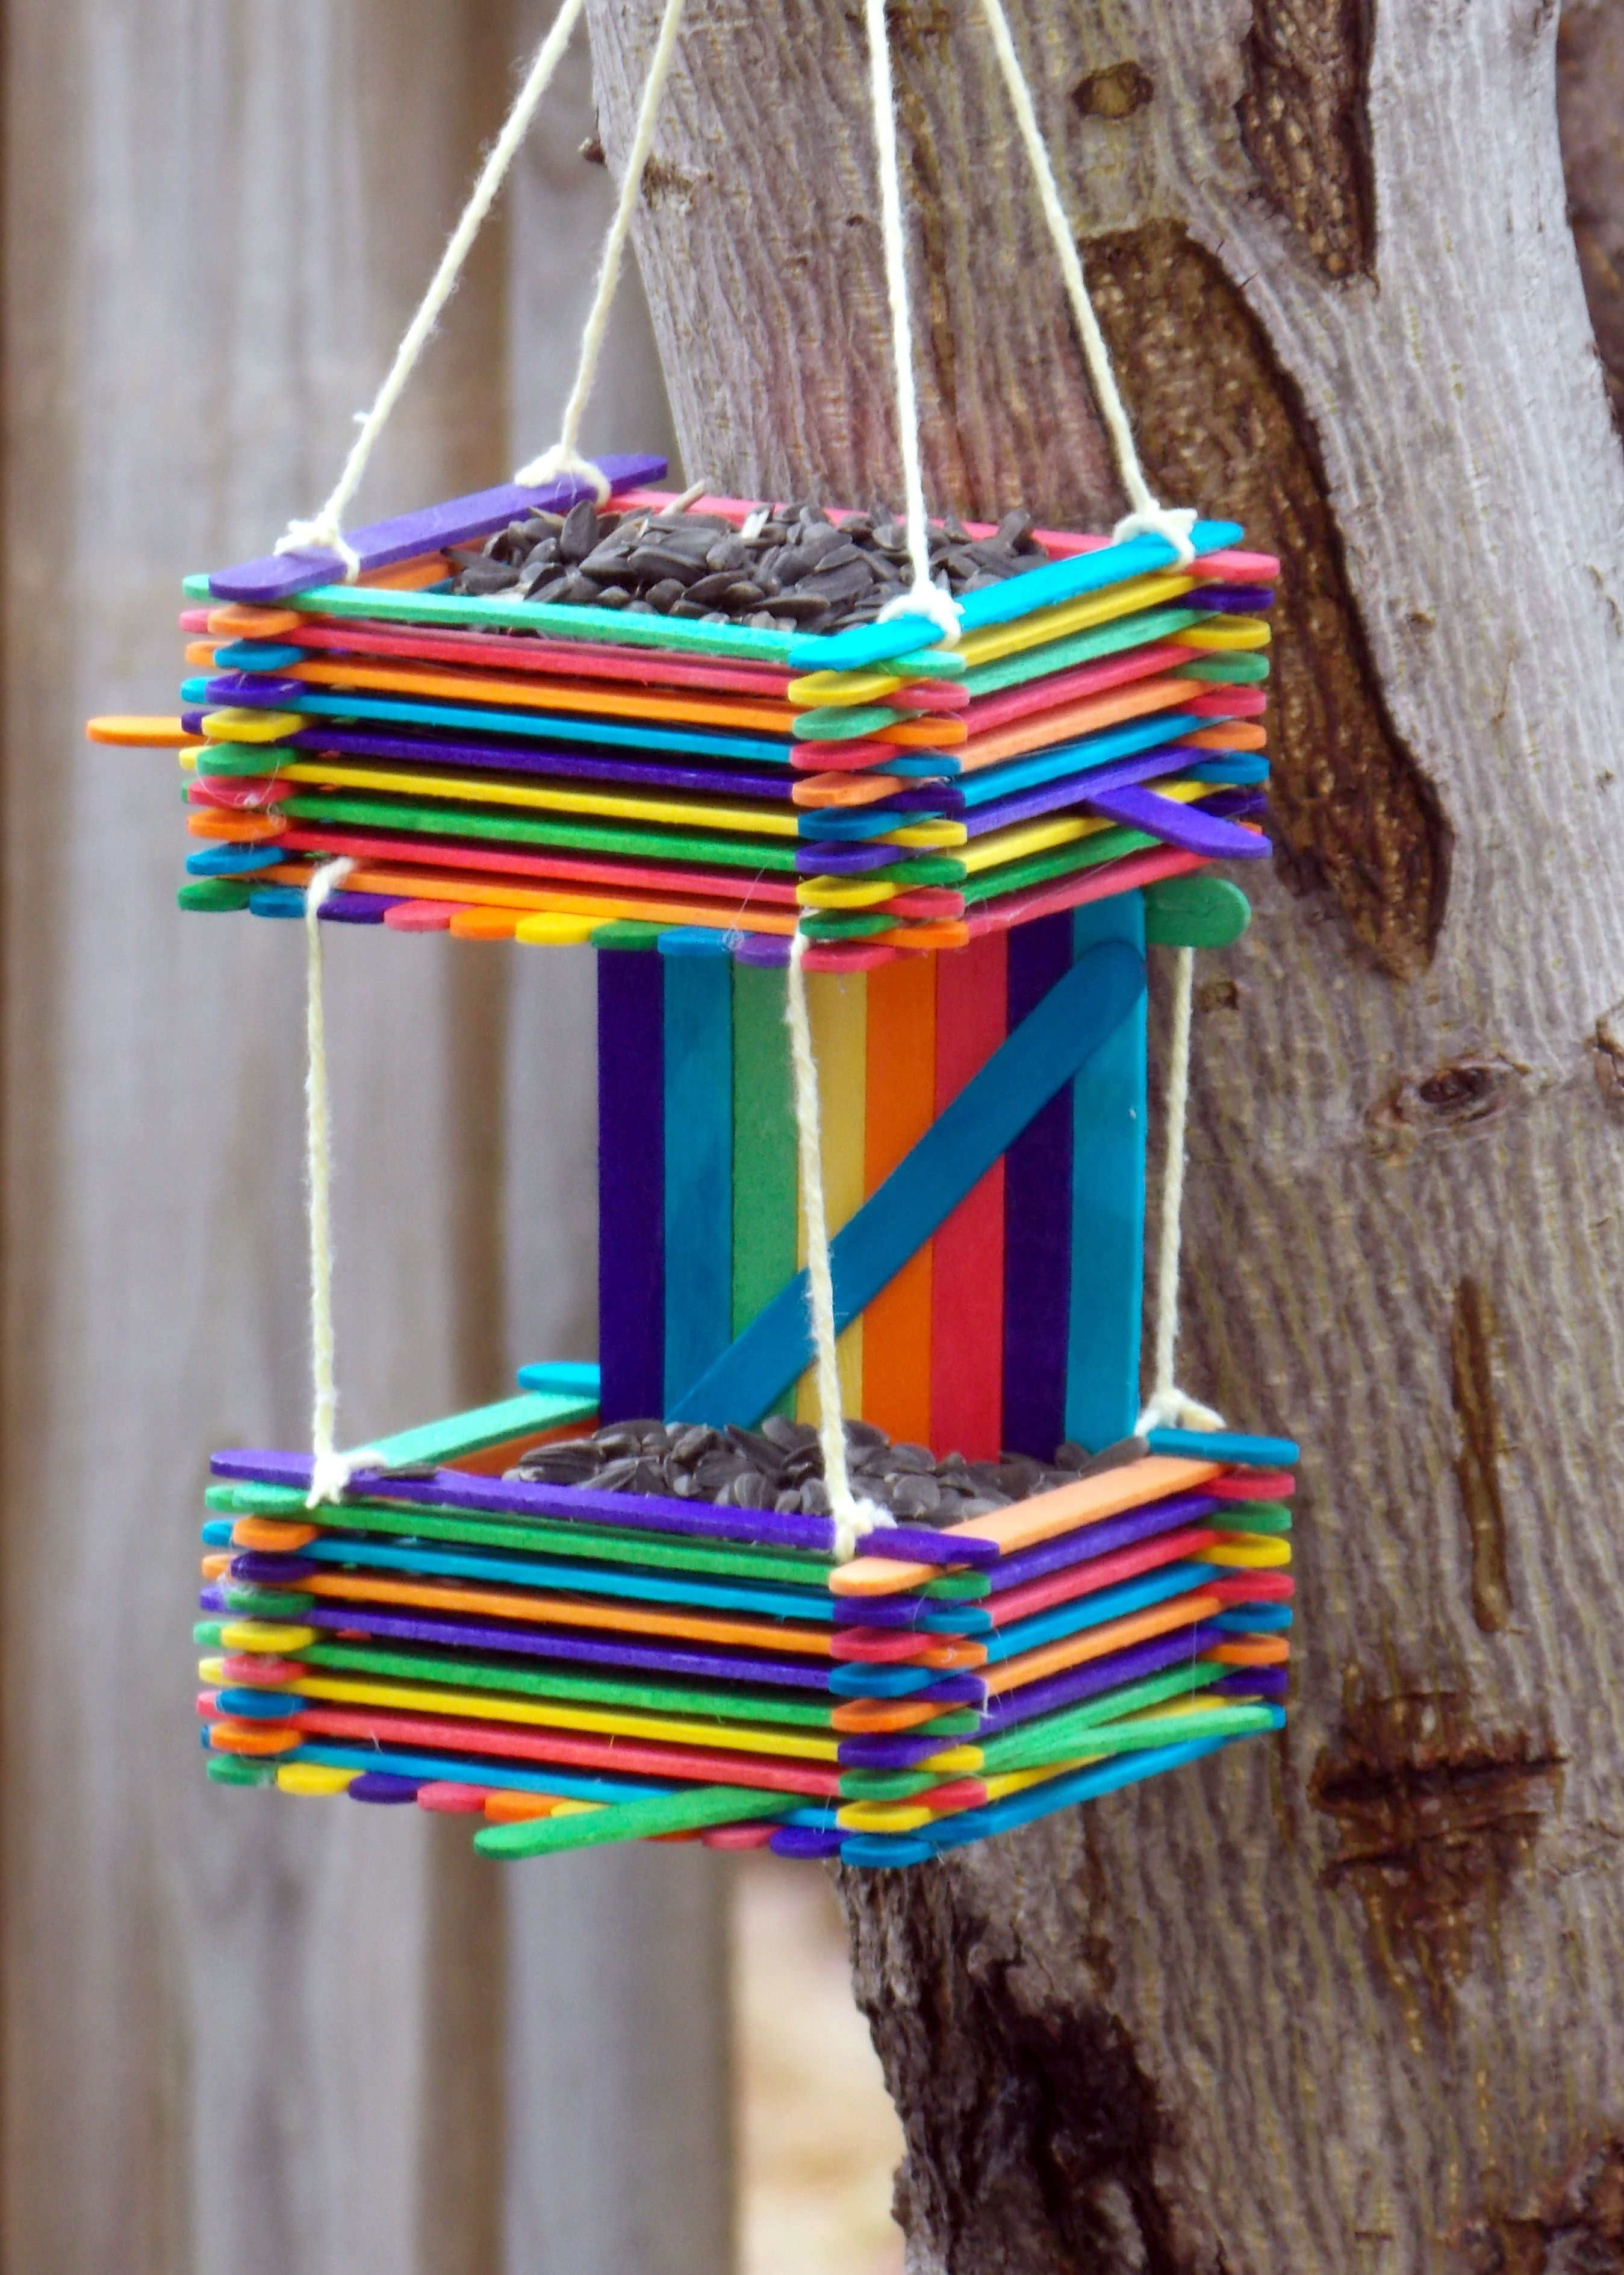 Round wooden sticks for crafts - Popsicle Stick Bird House 1 Easy Birdhouse Made Out Of Colored Craft Sticks Popsicle